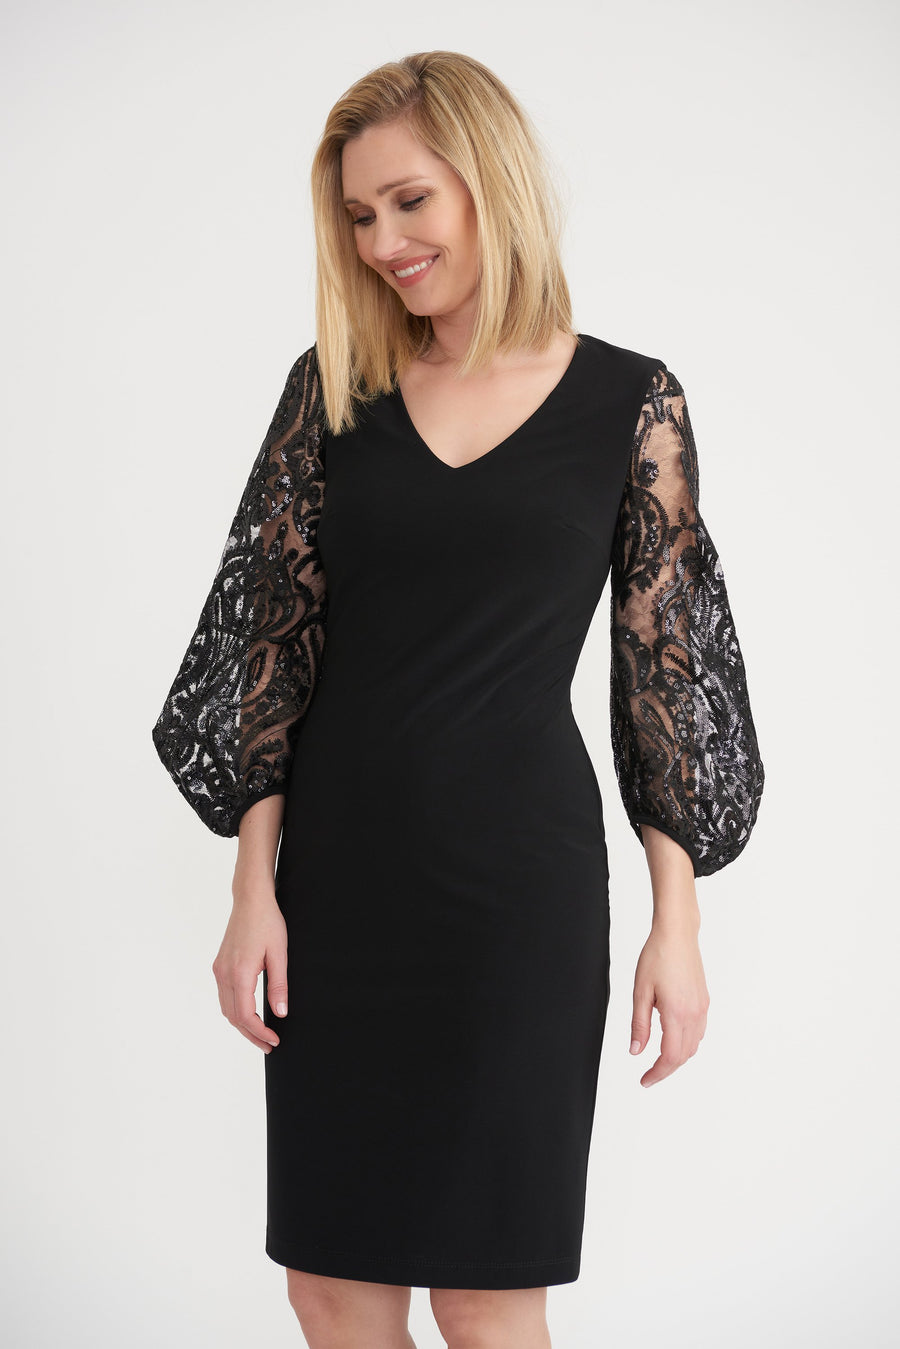 Joseph Ribkoff Ladies Dress Black Style 203437